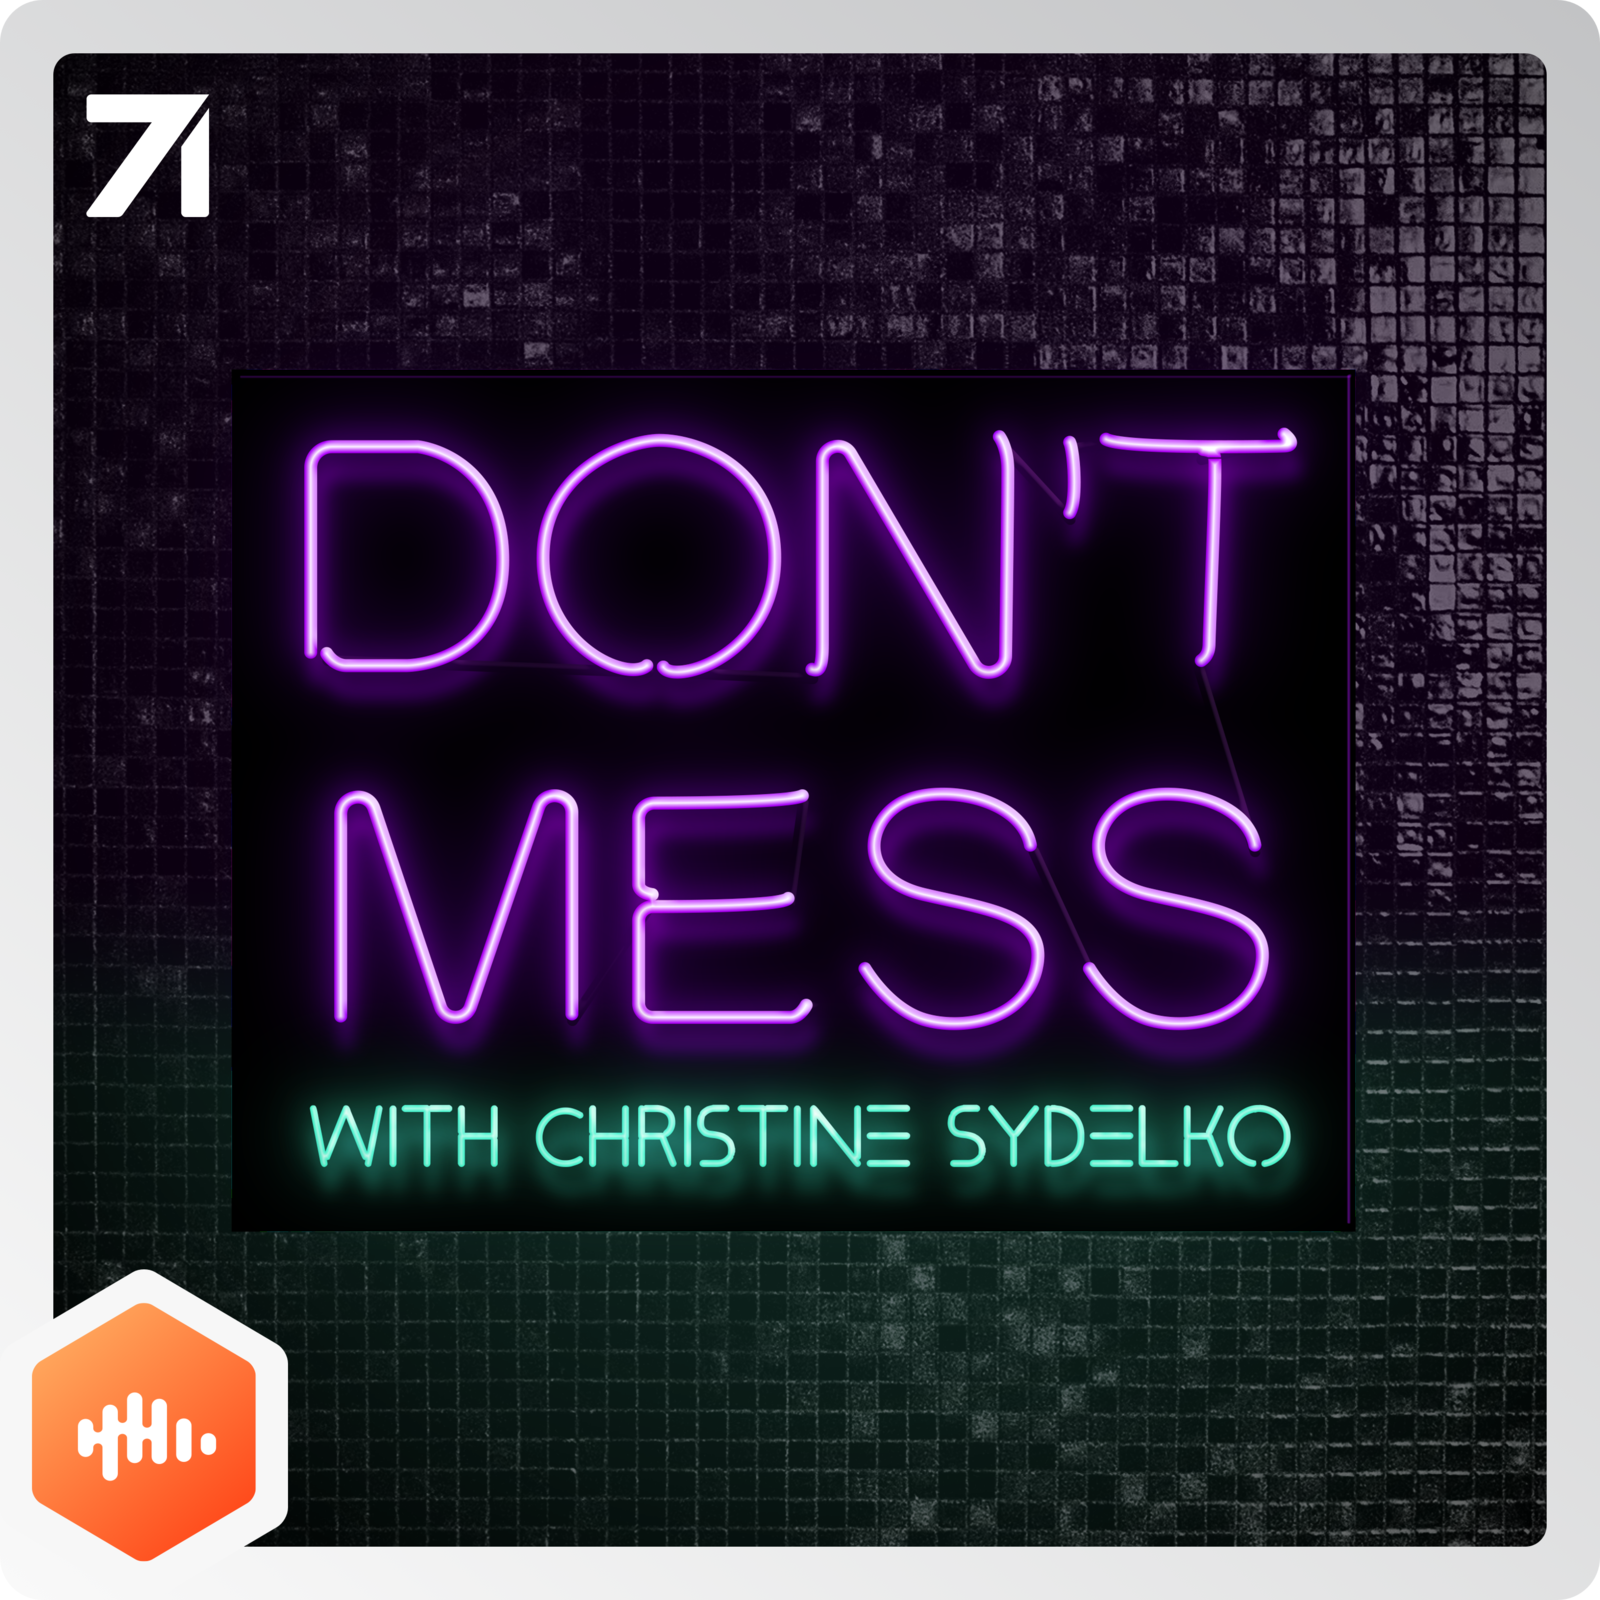 Don't Mess with Christine Sydelko w/ guest Manny MUA